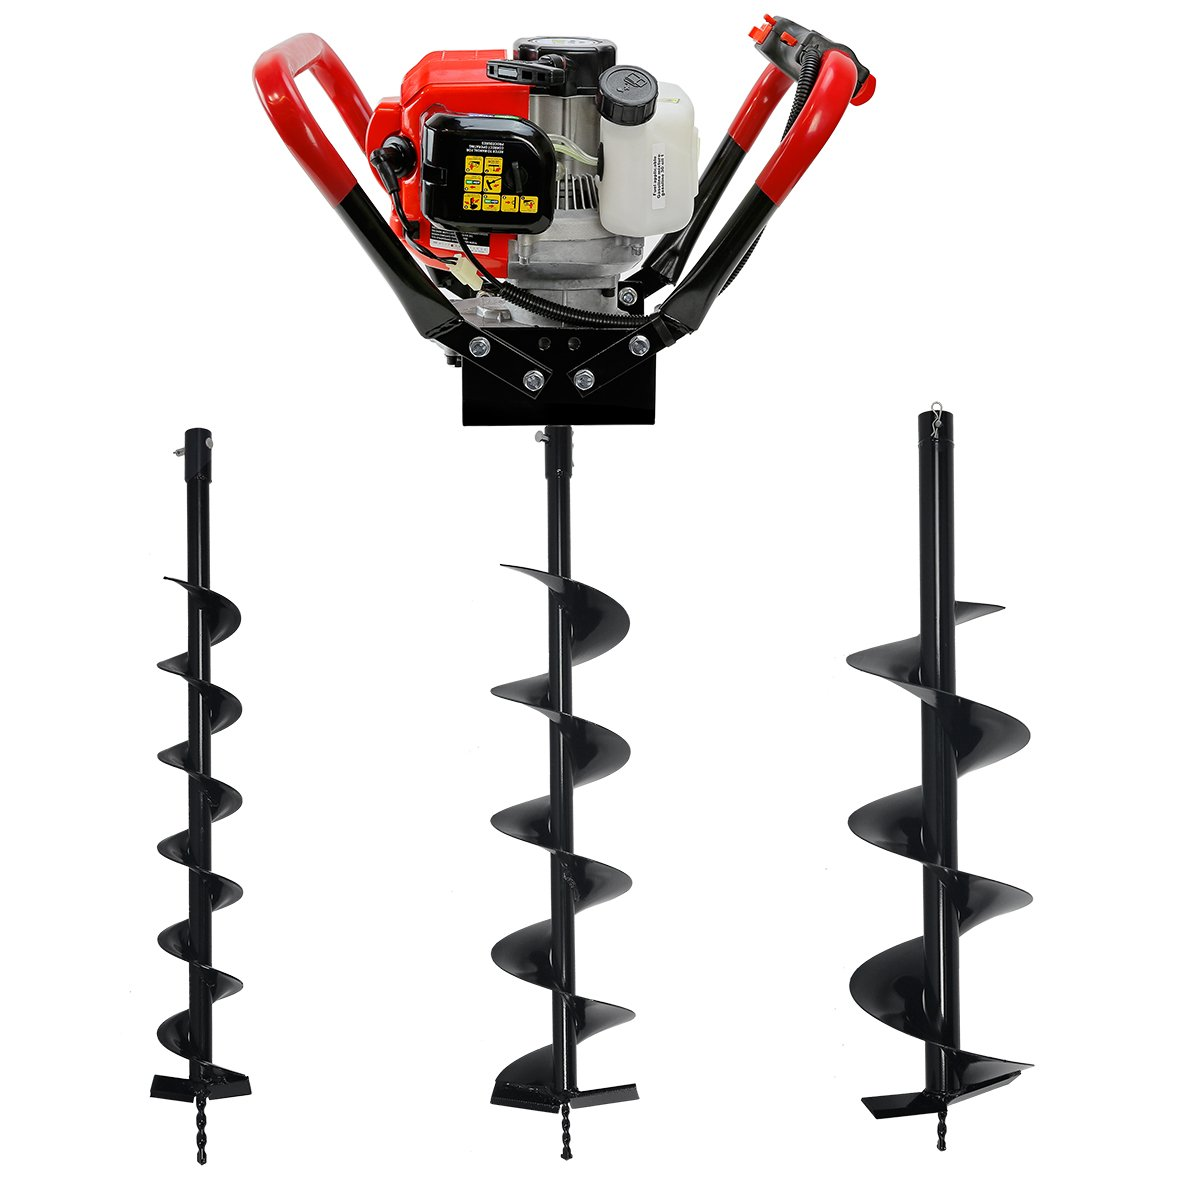 V-Type 55CC 2 Stroke Gas Posthole Digger One Man Auger (Digger + 4 6 8Bits) XtremepowerUS